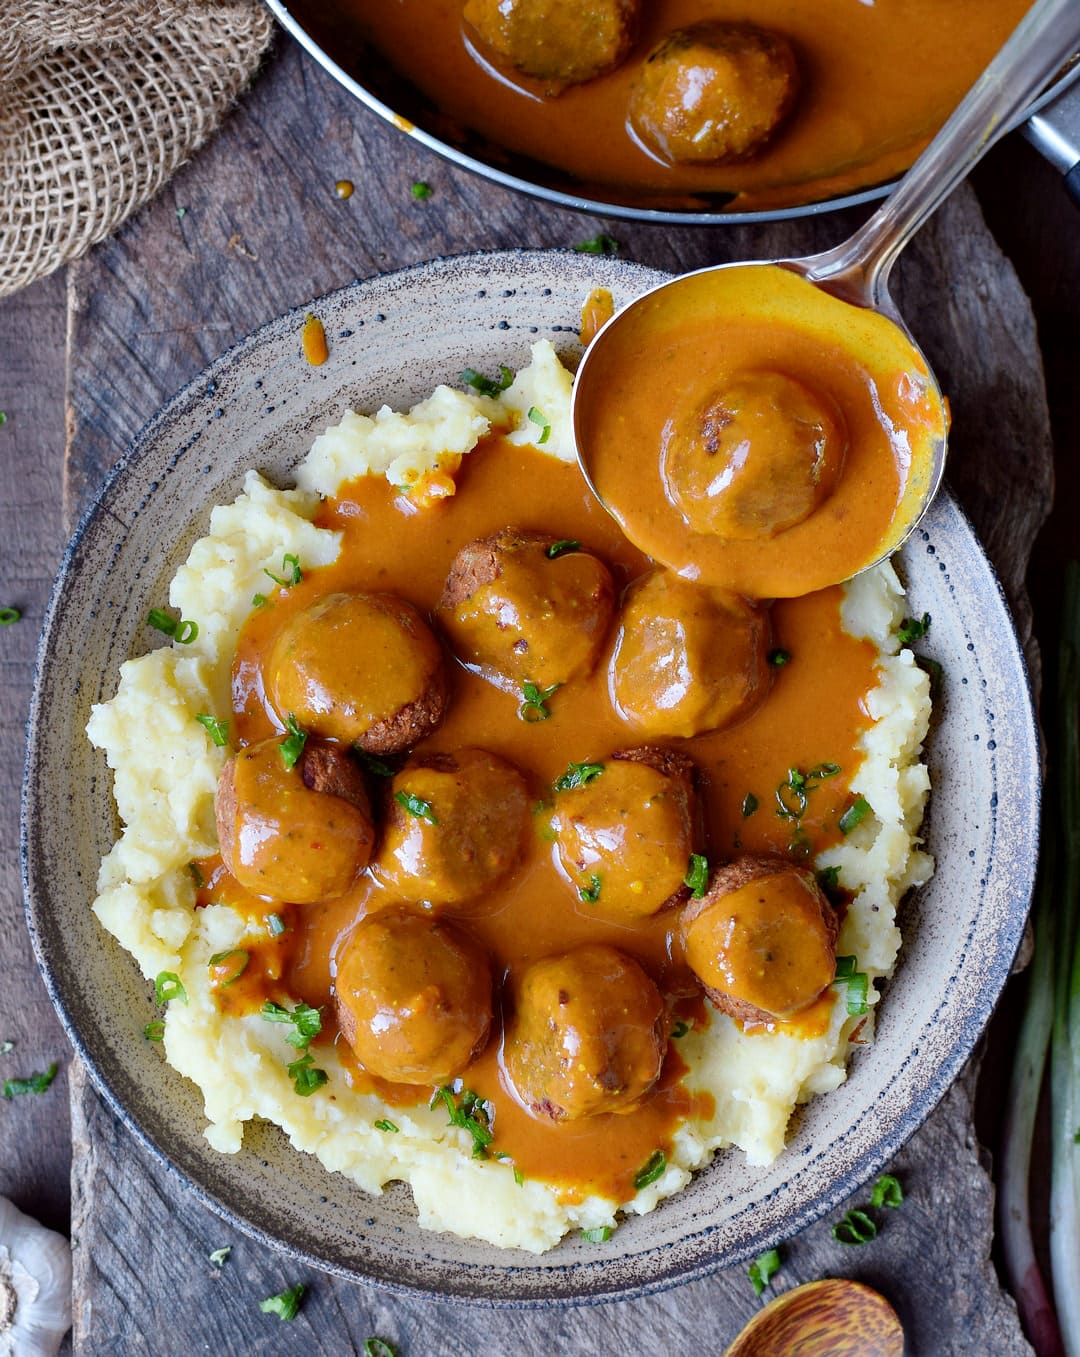 Vegan meatballs with gluten-free gravy over mashed potatoes in a plate with ladle